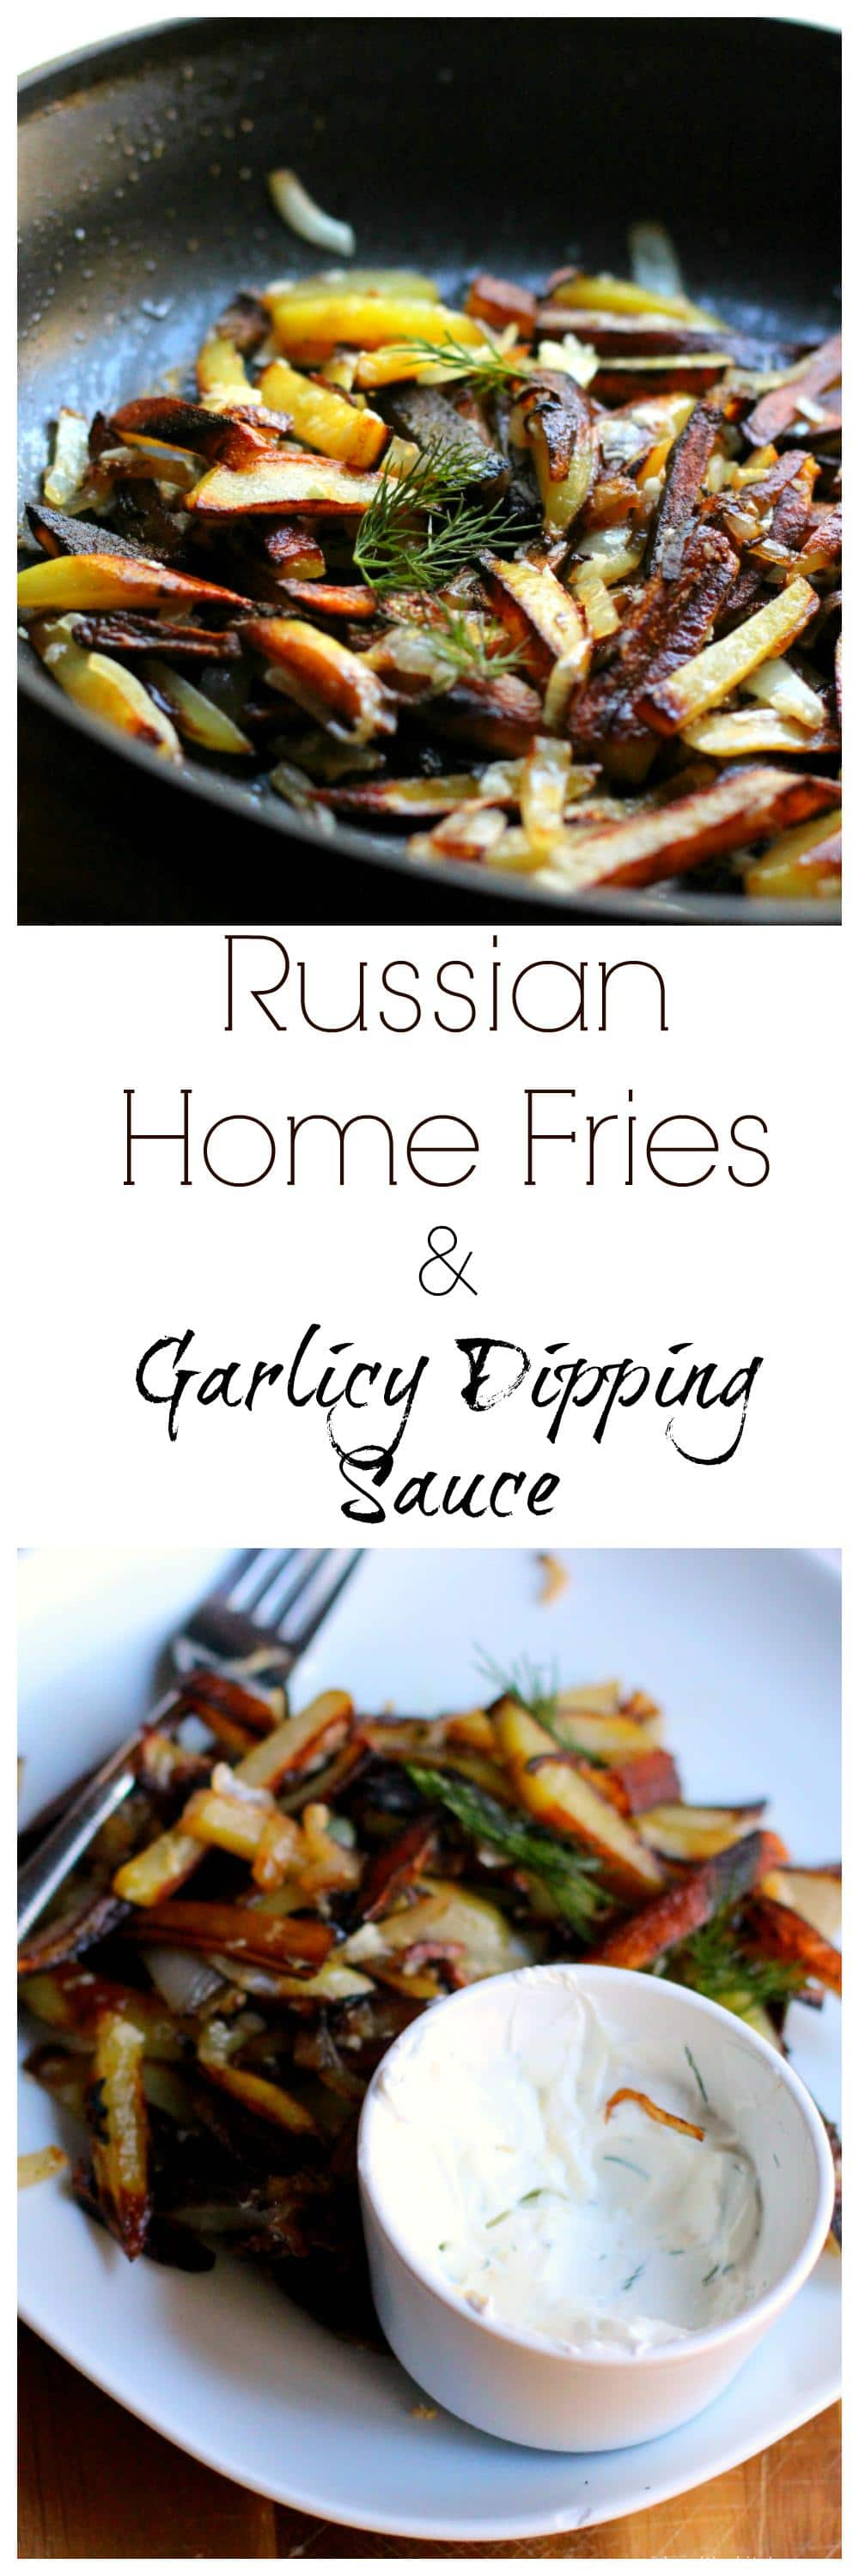 Russian Home Fries- ЖАРЕНАЯ КАРТОШКА С ЛУКОМ